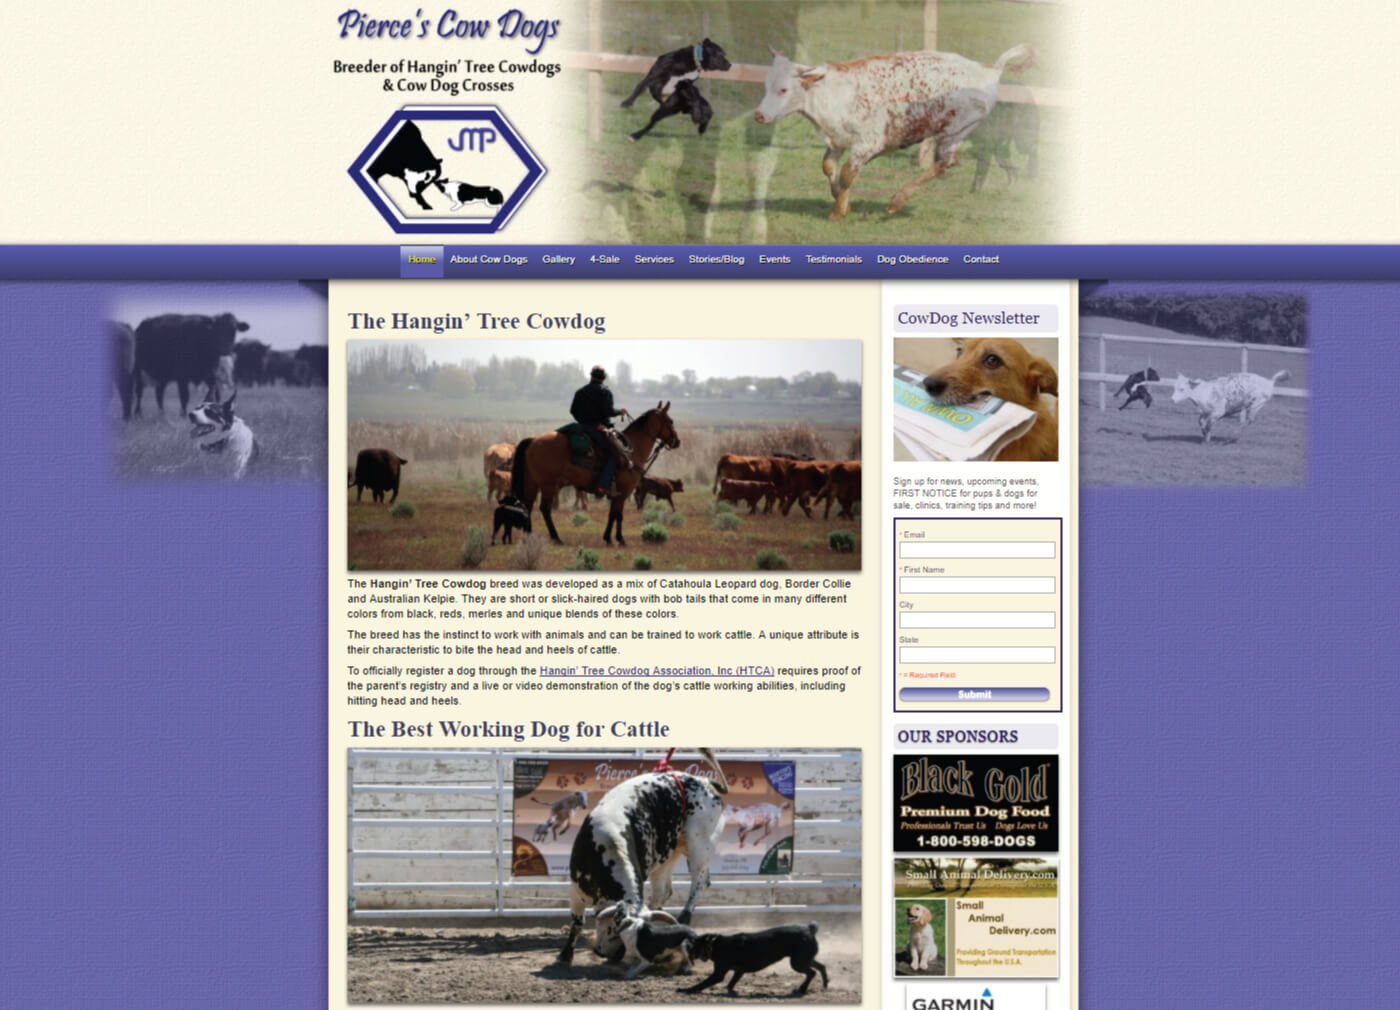 Hanging tree cow dogs for sale - Home Of The Hangin Tree Cow Dog